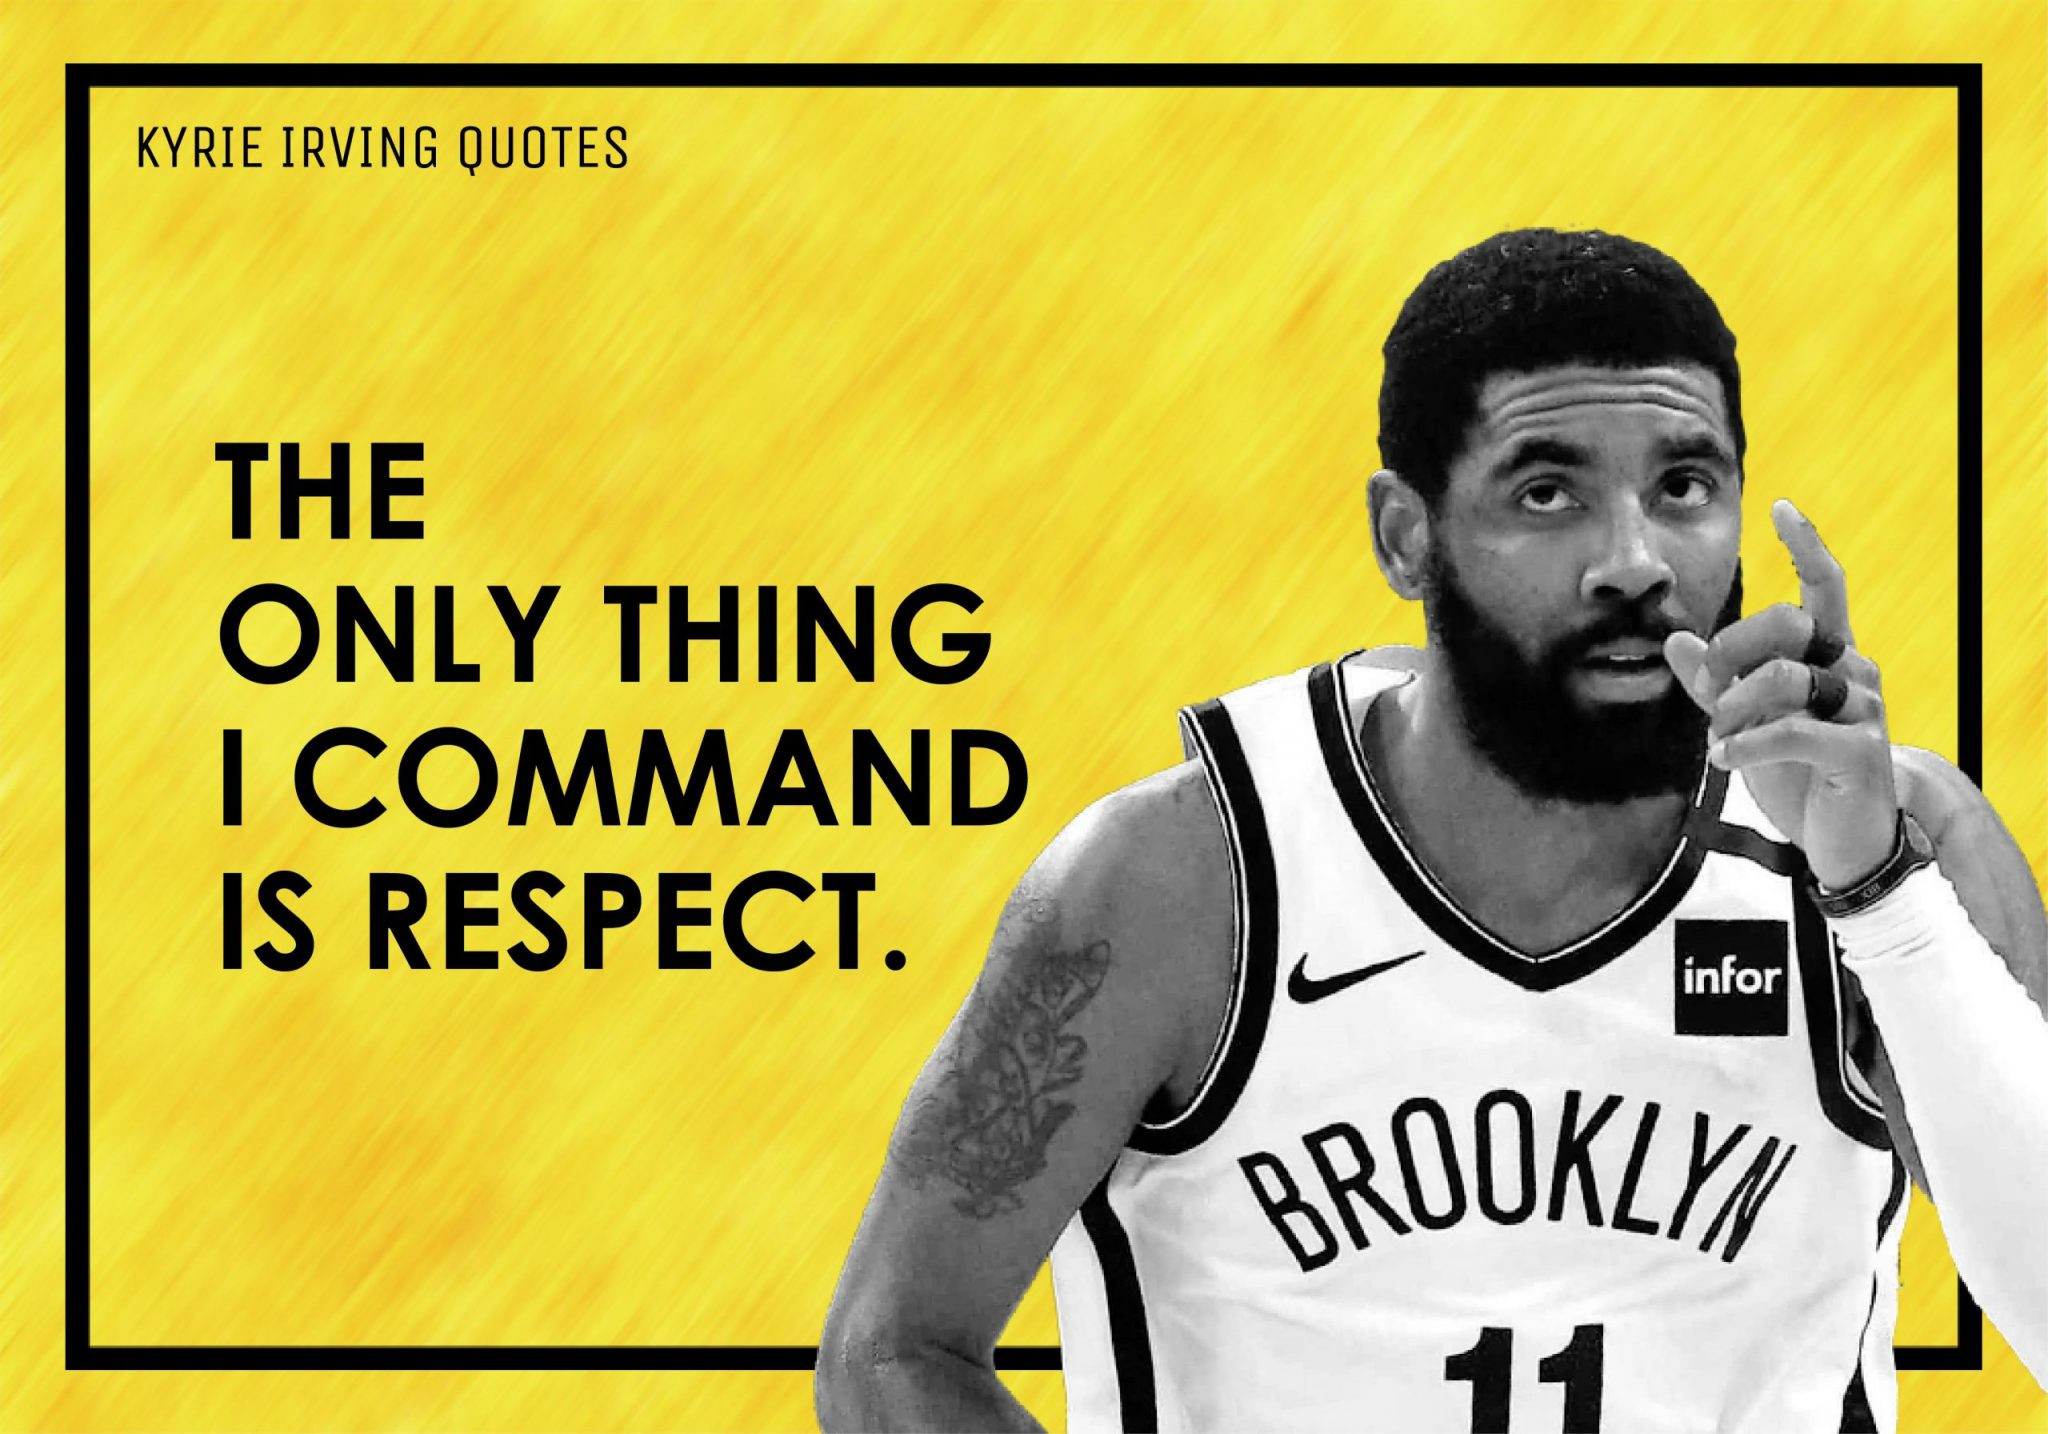 Kyrie Irving Quotes (11)